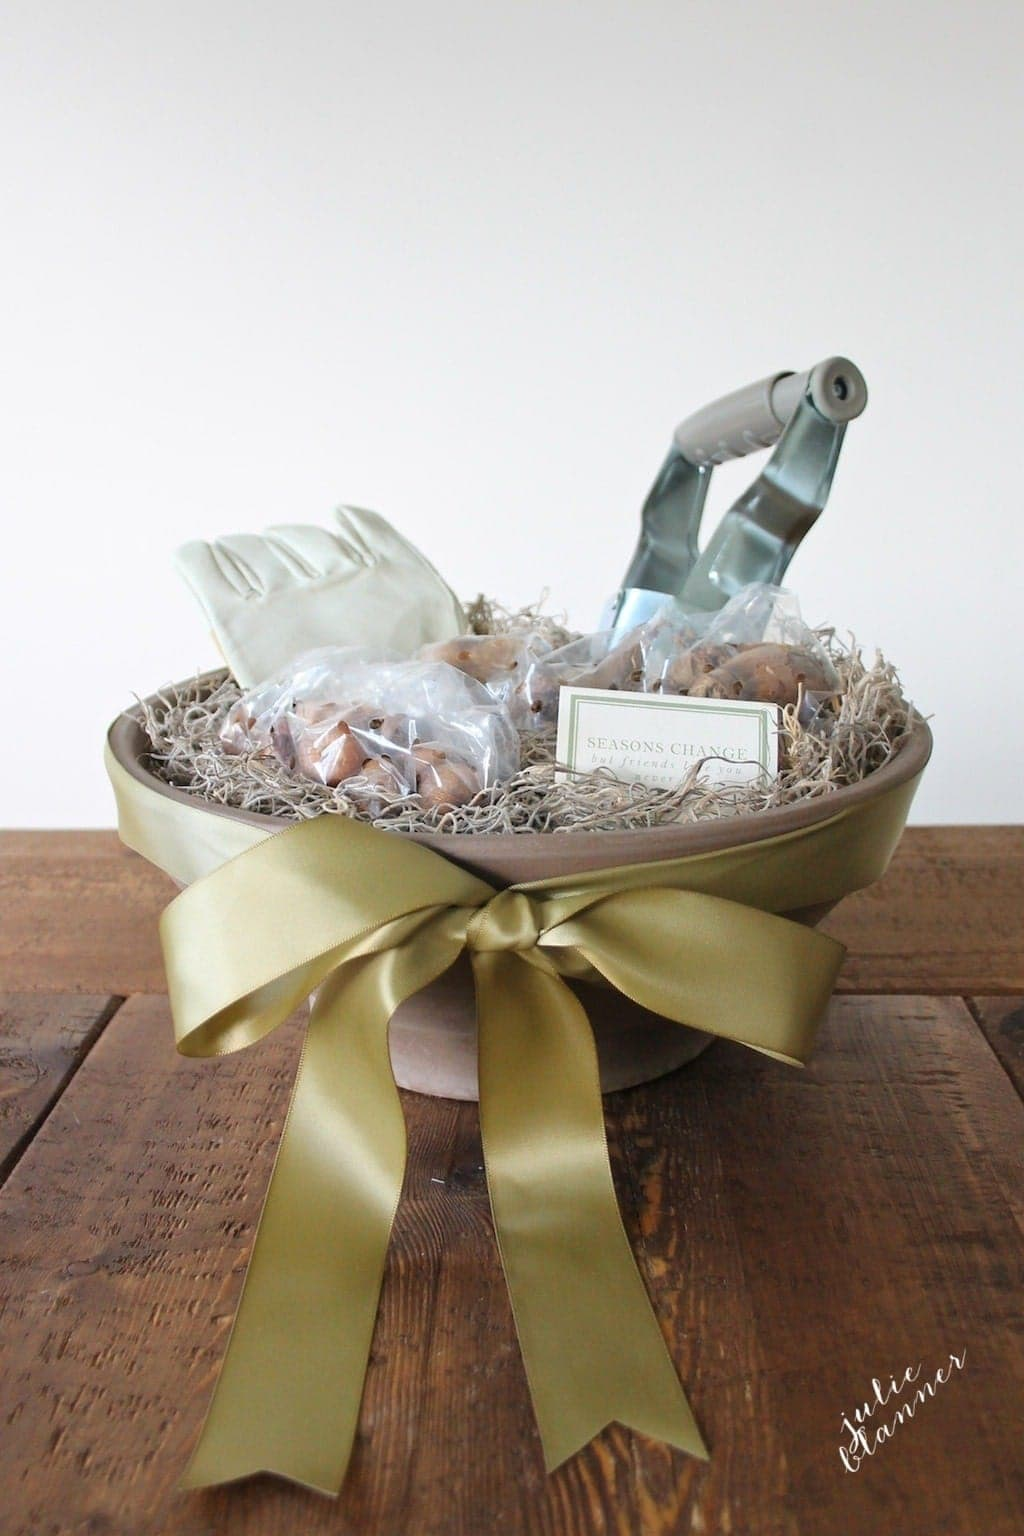 Christmas Gifts in a Basket Ideas - gardening gift basket